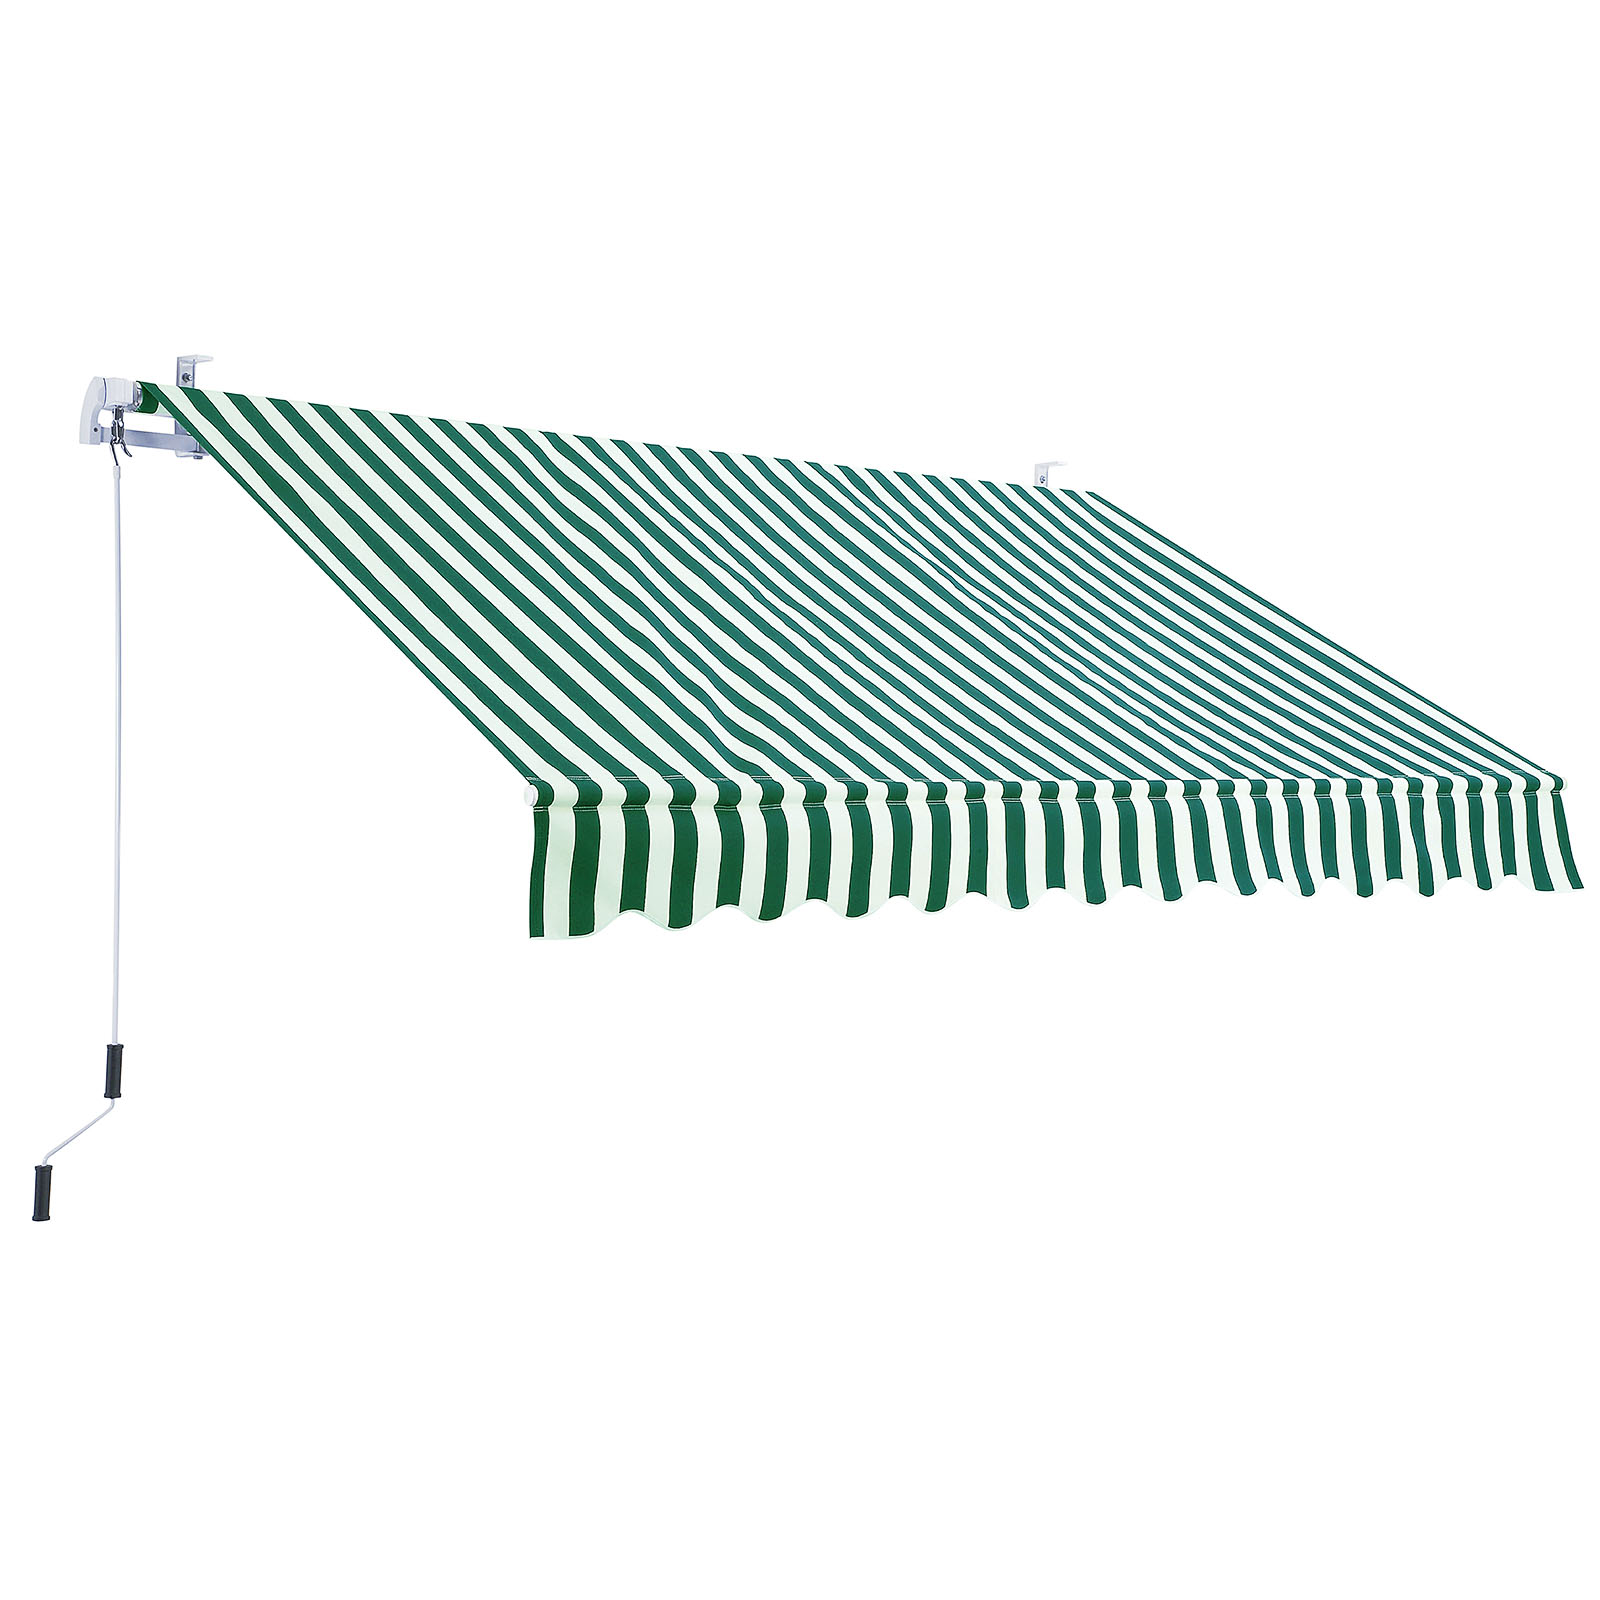 Retractable Patio Awning Prices